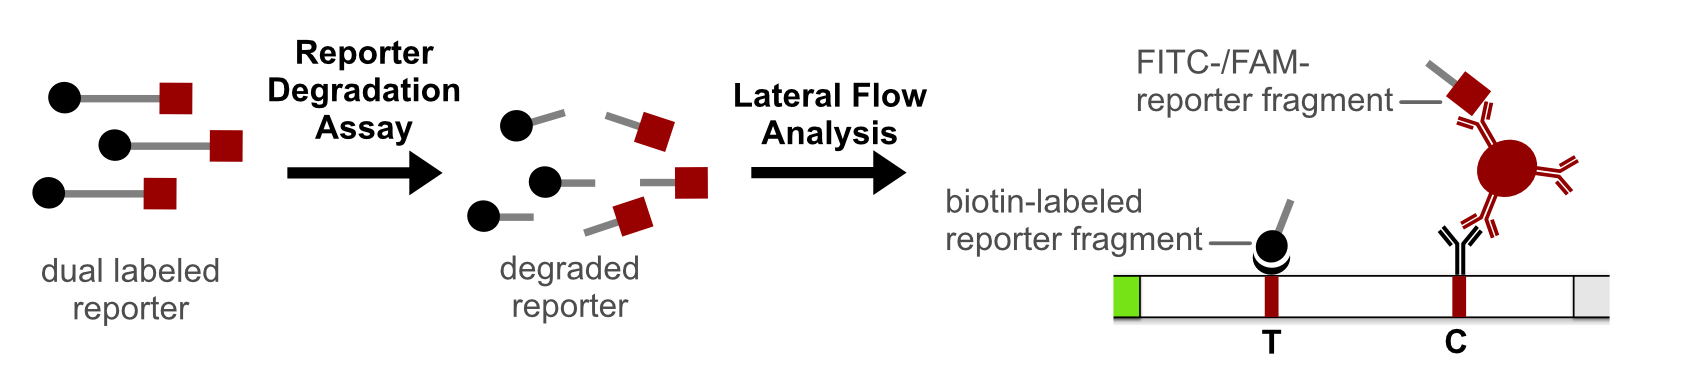 Reporter Degradation Lateral Flow Strategy